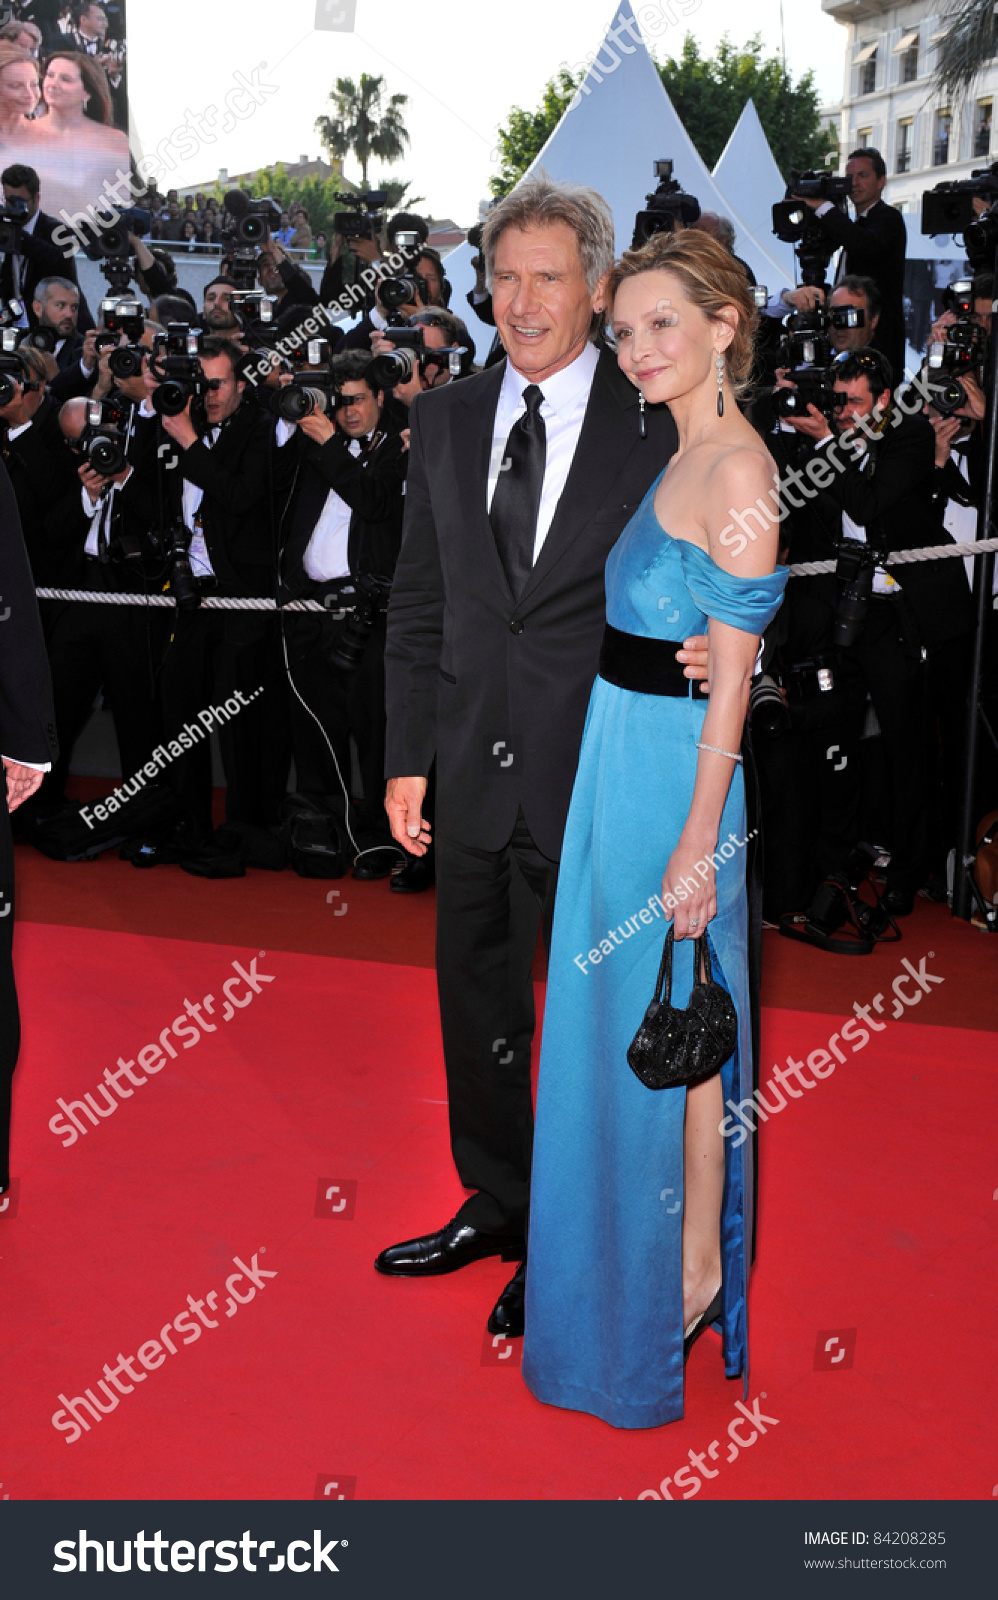 harrison ford calista flockhart at premiere for indiana jones and the kingdom of the crystal. Black Bedroom Furniture Sets. Home Design Ideas